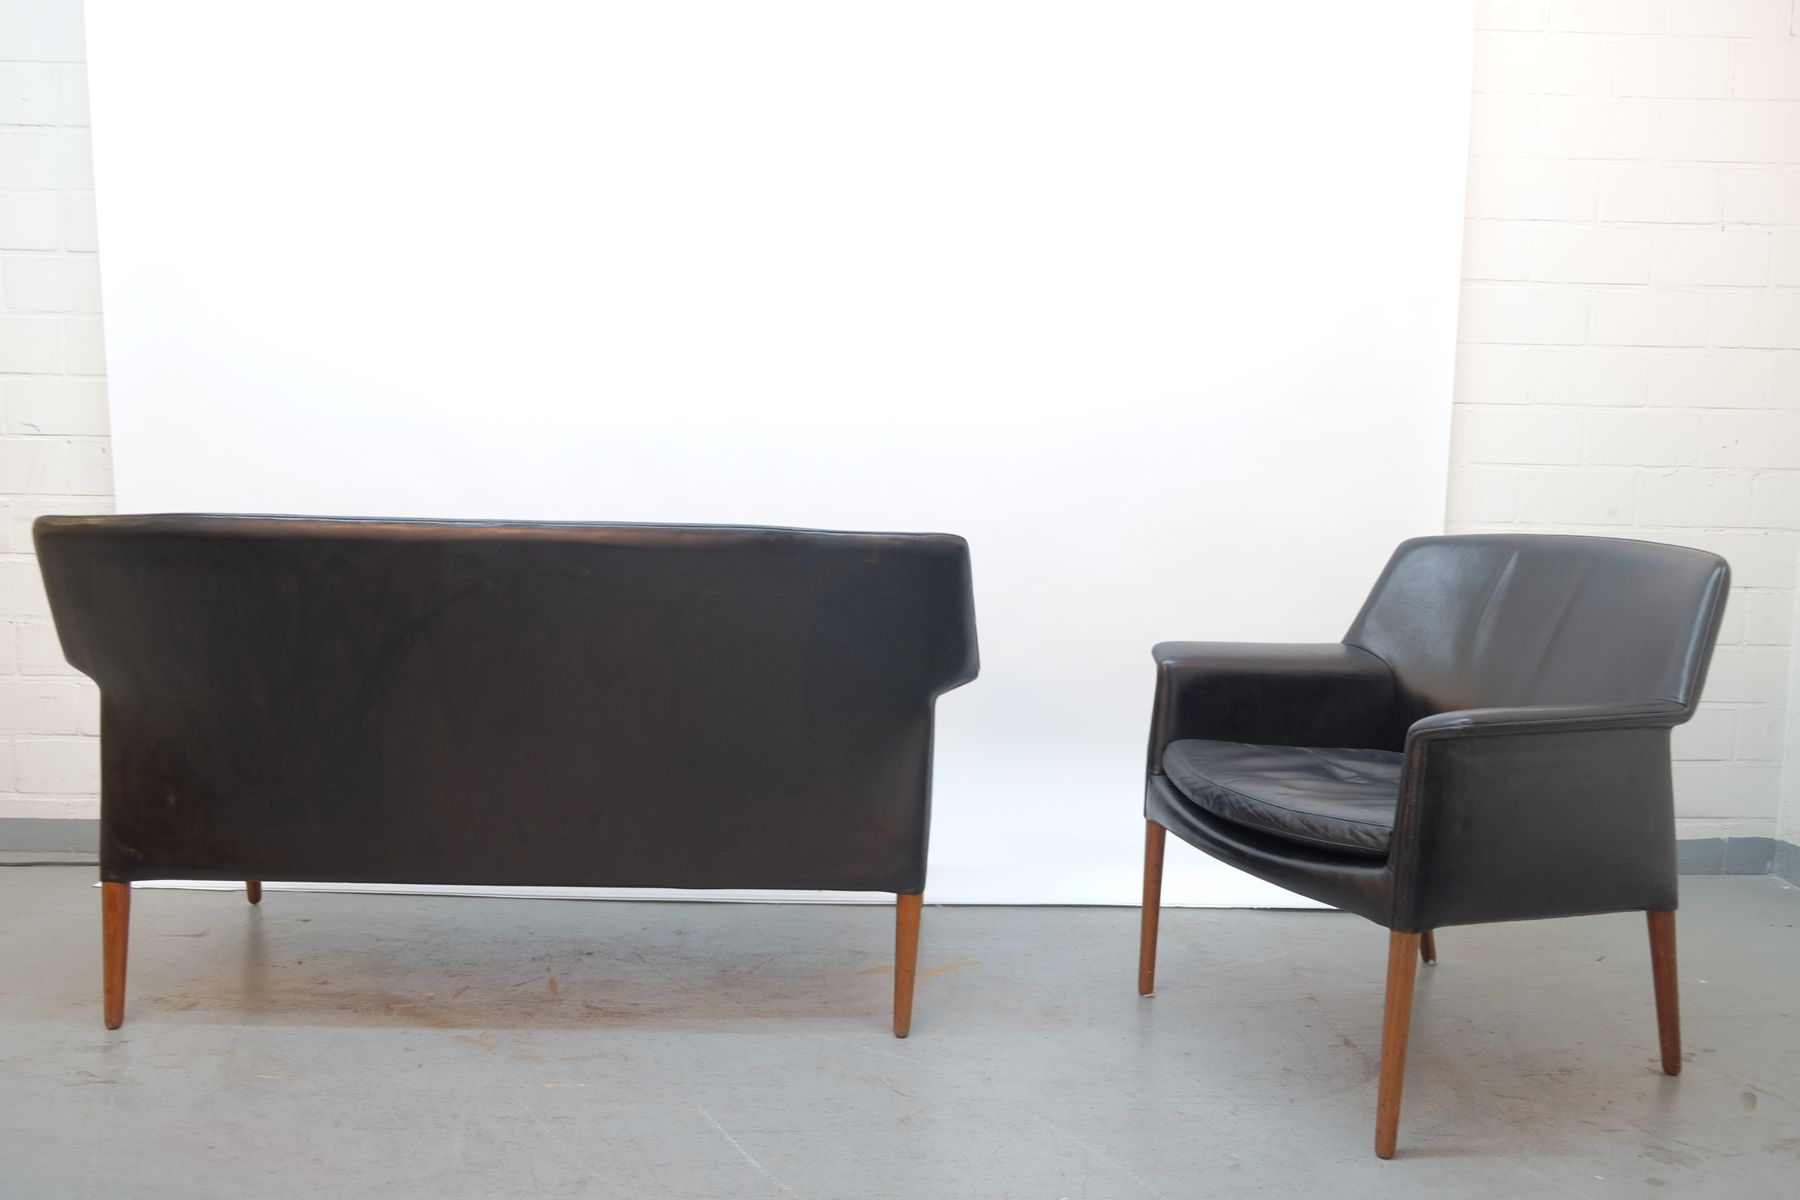 mid century sofa und sessel von ejnar larsen aksel bender bei pamono kaufen. Black Bedroom Furniture Sets. Home Design Ideas